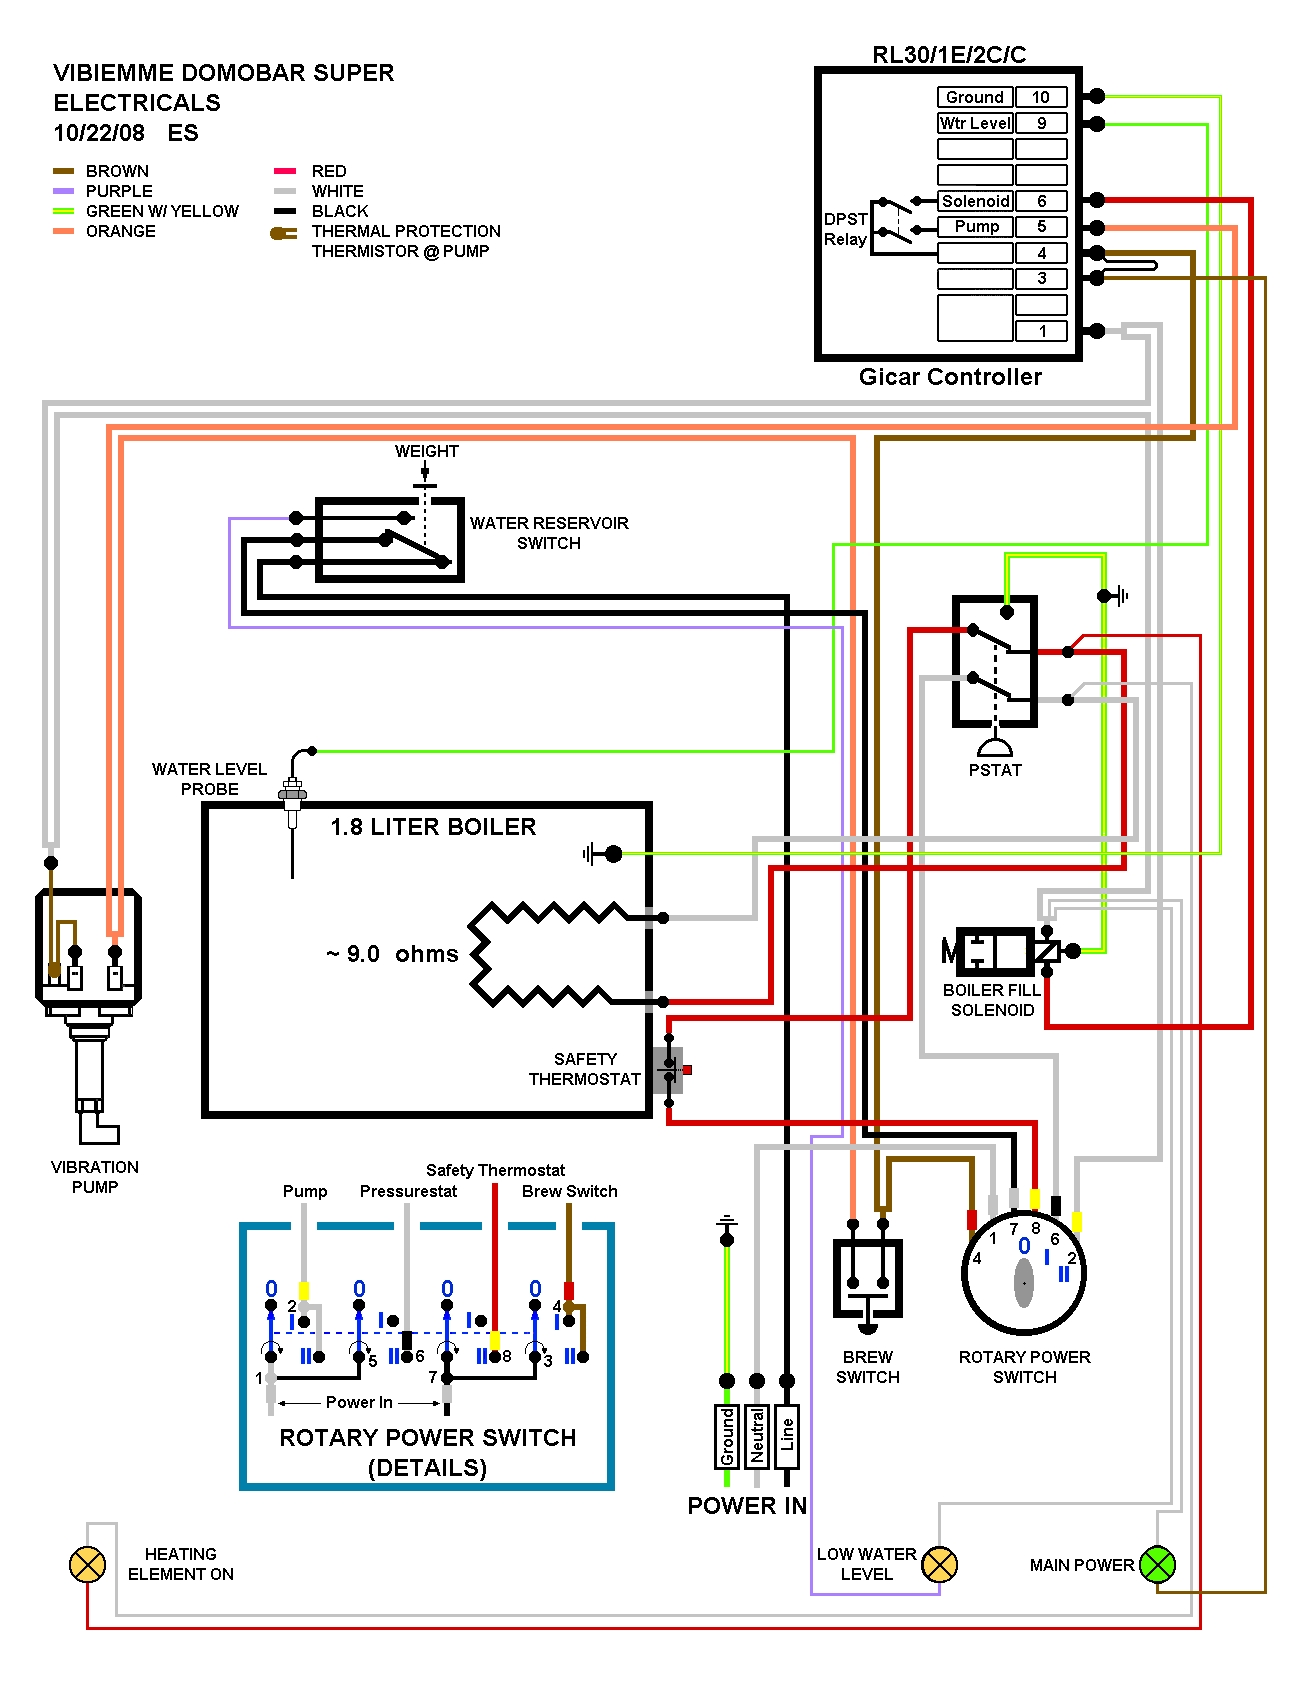 Vibiemme Domobar Super Electrical Diagram Fax Machine Wiring Full Size Drawing